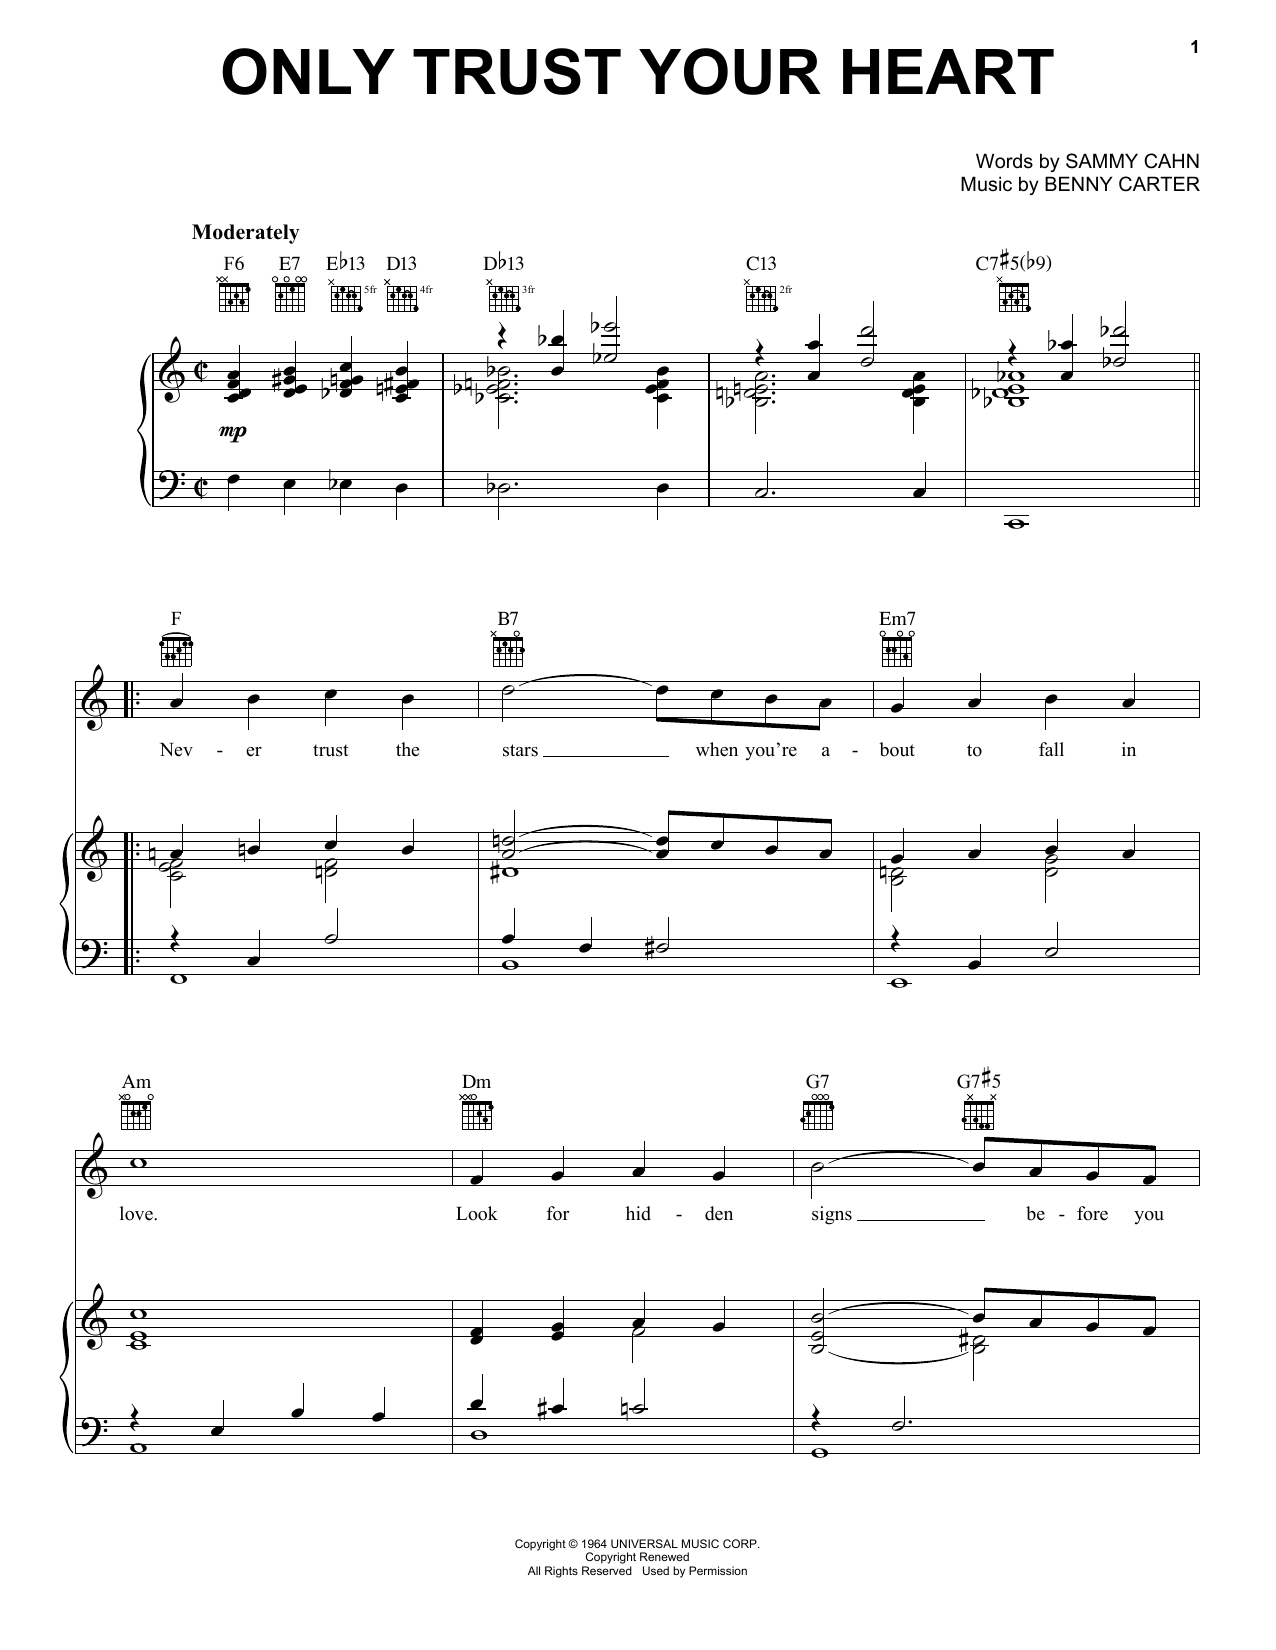 Diana Krall Only Trust Your Heart sheet music notes and chords. Download Printable PDF.